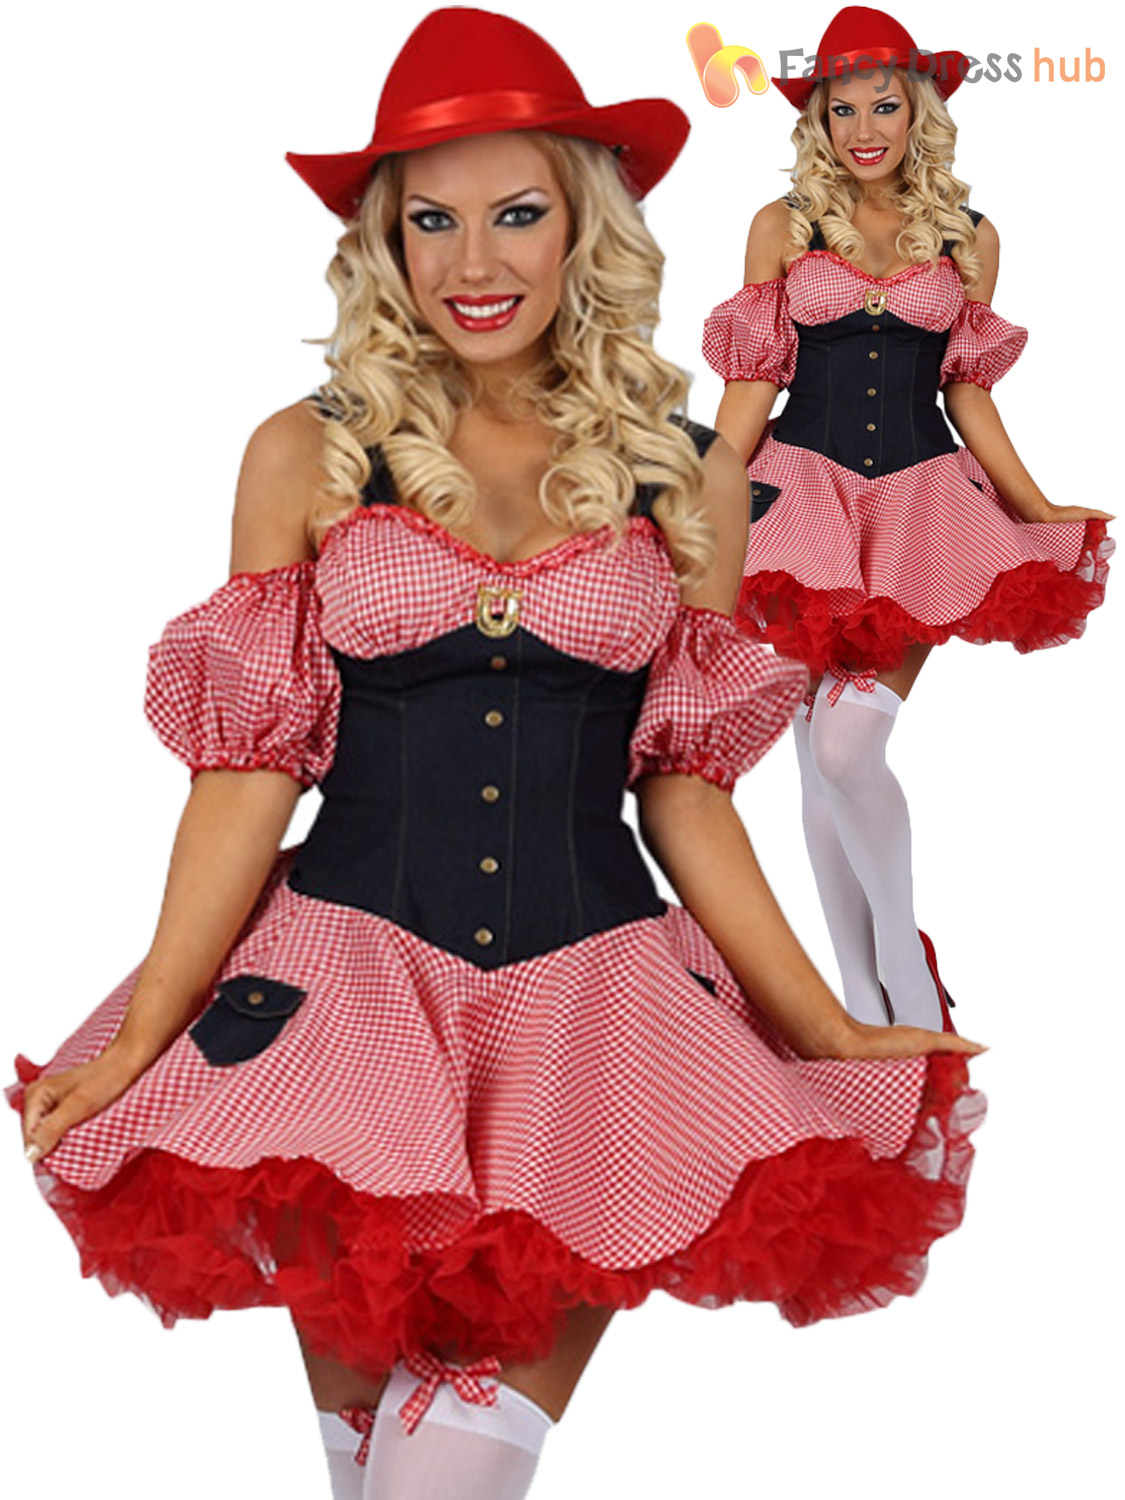 Ladies Country Cowgirl Costume Dolly Parton Fancy Dress Cowboy Western Outfit